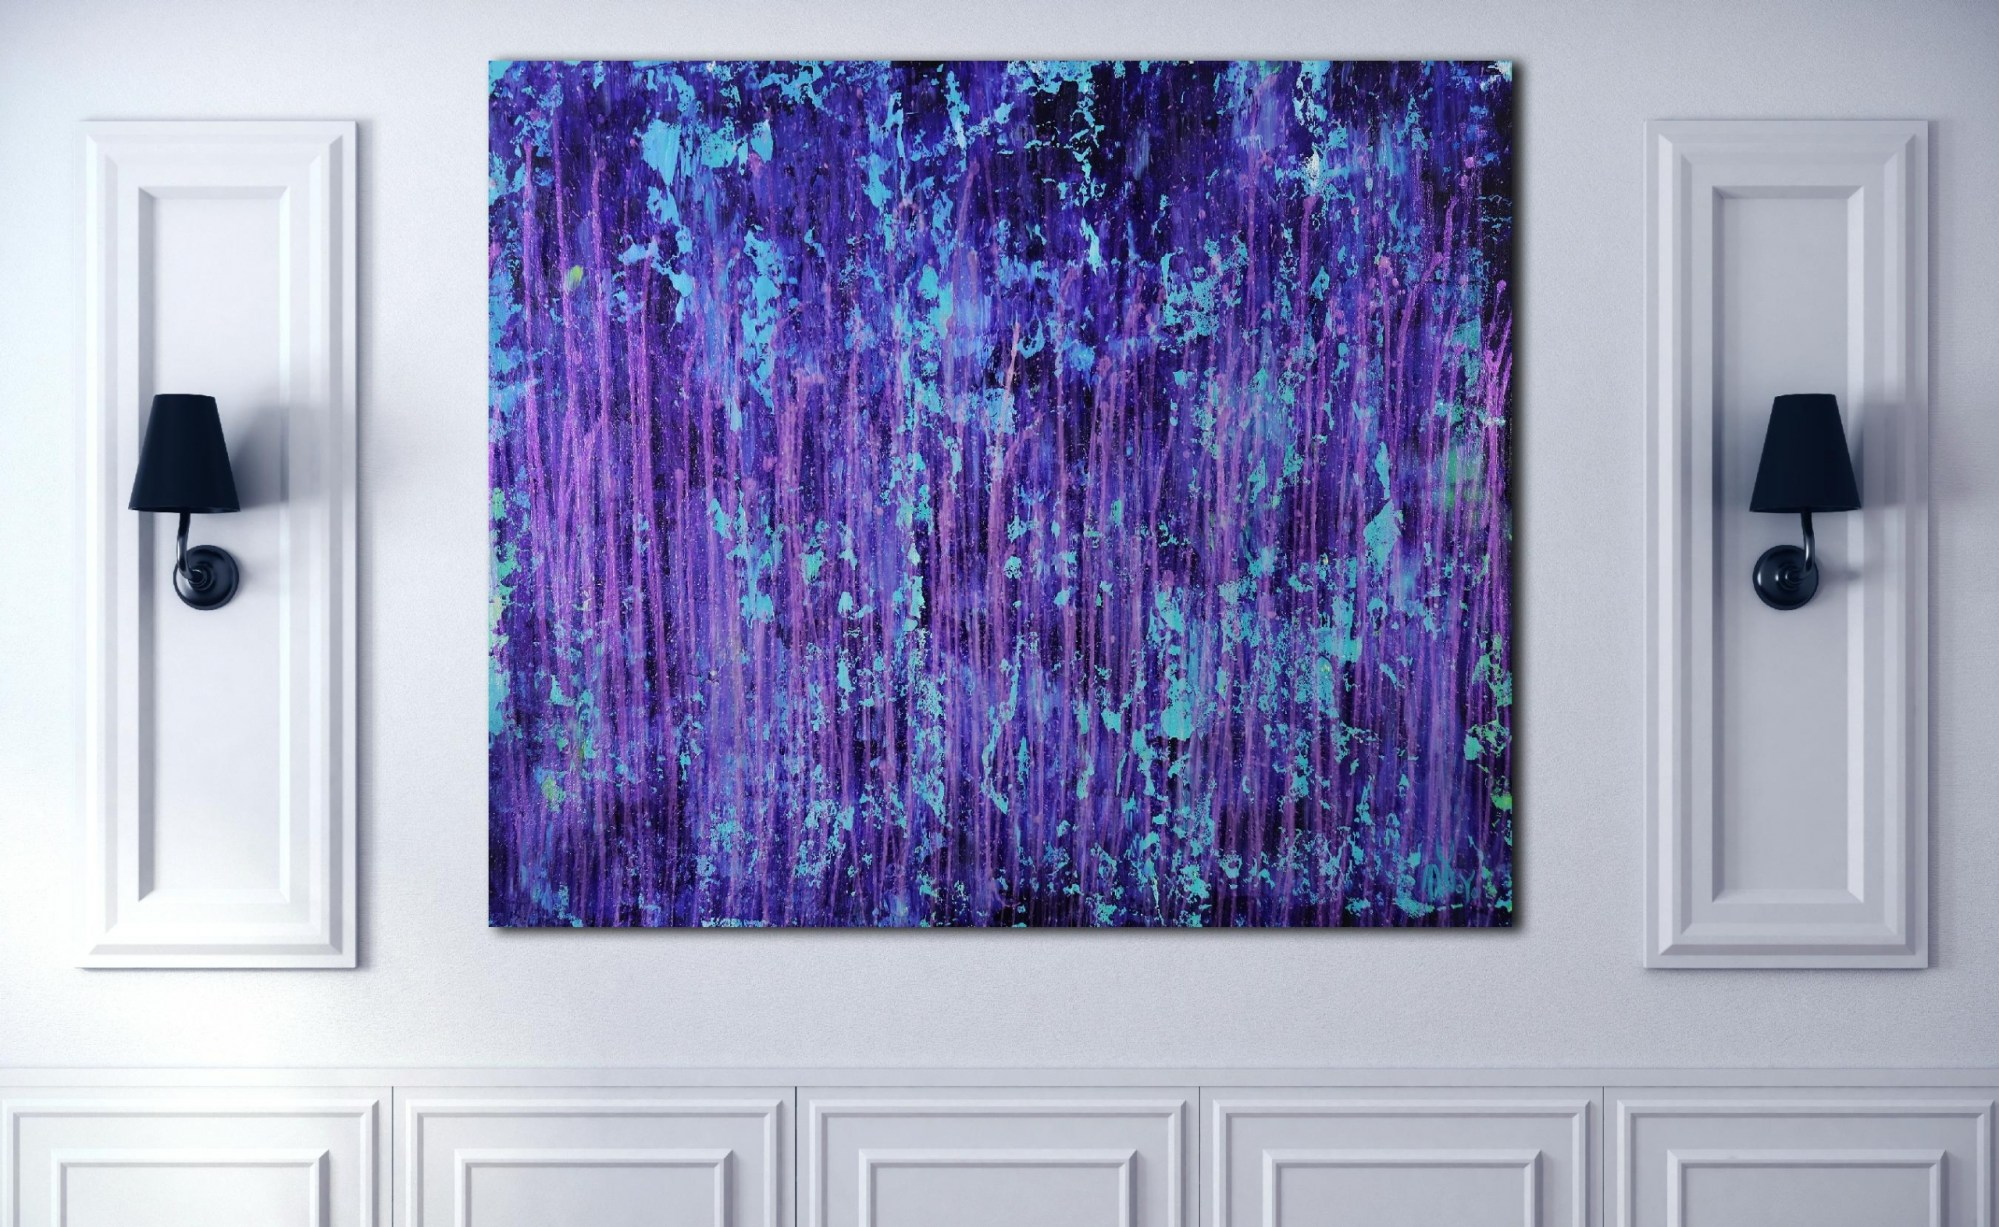 Room View - Torrential Purple Storm (A Closer Look) #1 (2020) by Nestor Toro